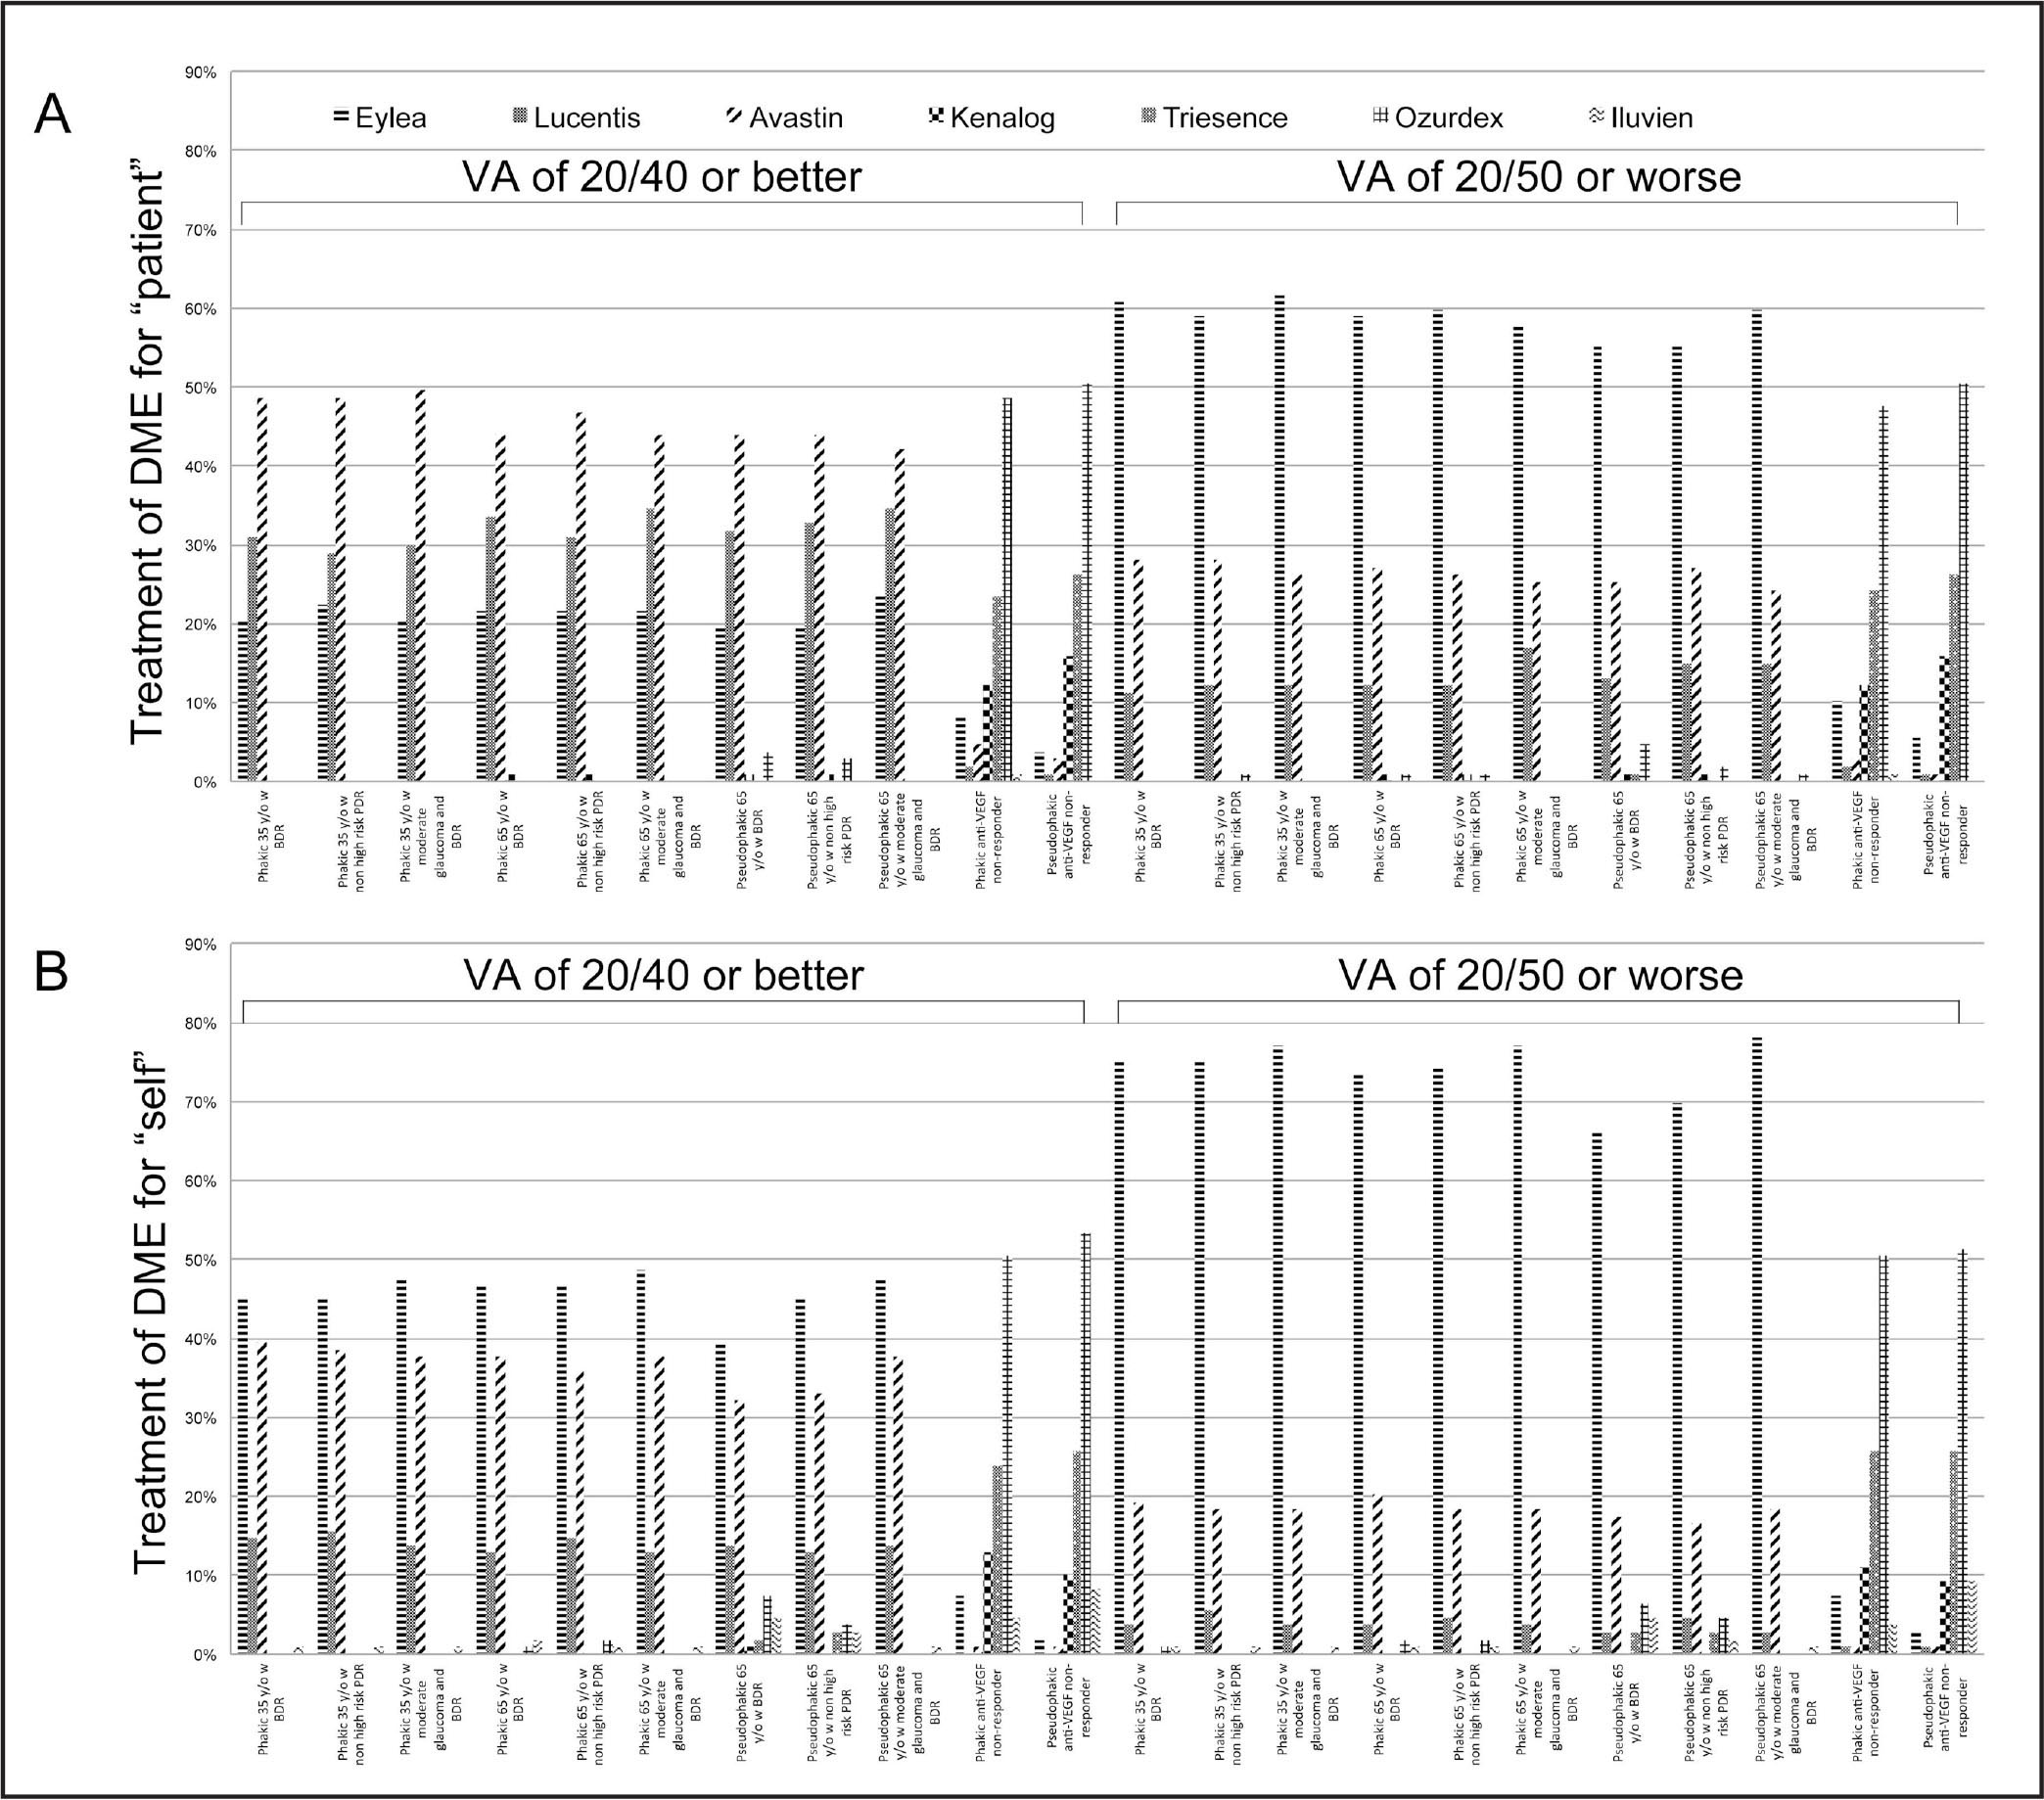 Treatment recommendations for diabetic macular edema by retina specialists differ for patients with visual acuity (VA) of 20/40 or better versus those with VA of 20/50 or worse. Of the 2,669 retina specialists surveyed, 216 responded as to treatment recommendations for 11 different patient descriptions (X-axis) with VA of 20/40 or better and VA of 20/50 or worse. The percentage of respondents selecting each therapy are shown (Y-axis). Results are shown for respondents asked to select therapy for a hypothetical patient (A) and for themselves (B). DME = diabetic macular edema; y/o = years old; BDR = background diabetic retinopathy; PDR = proliferative diabetic retinopathy; VEGF = vascular endothelial grownth factor